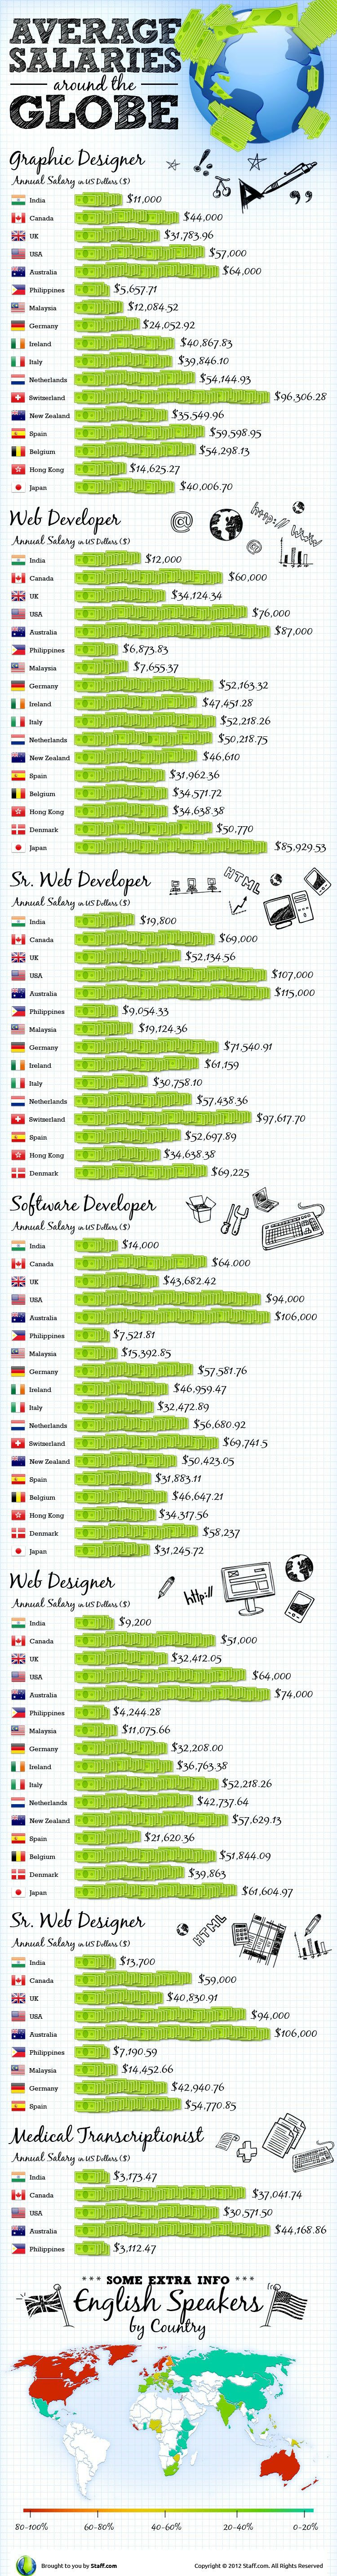 Salaries of Programmers, Designers & Developers Around the World